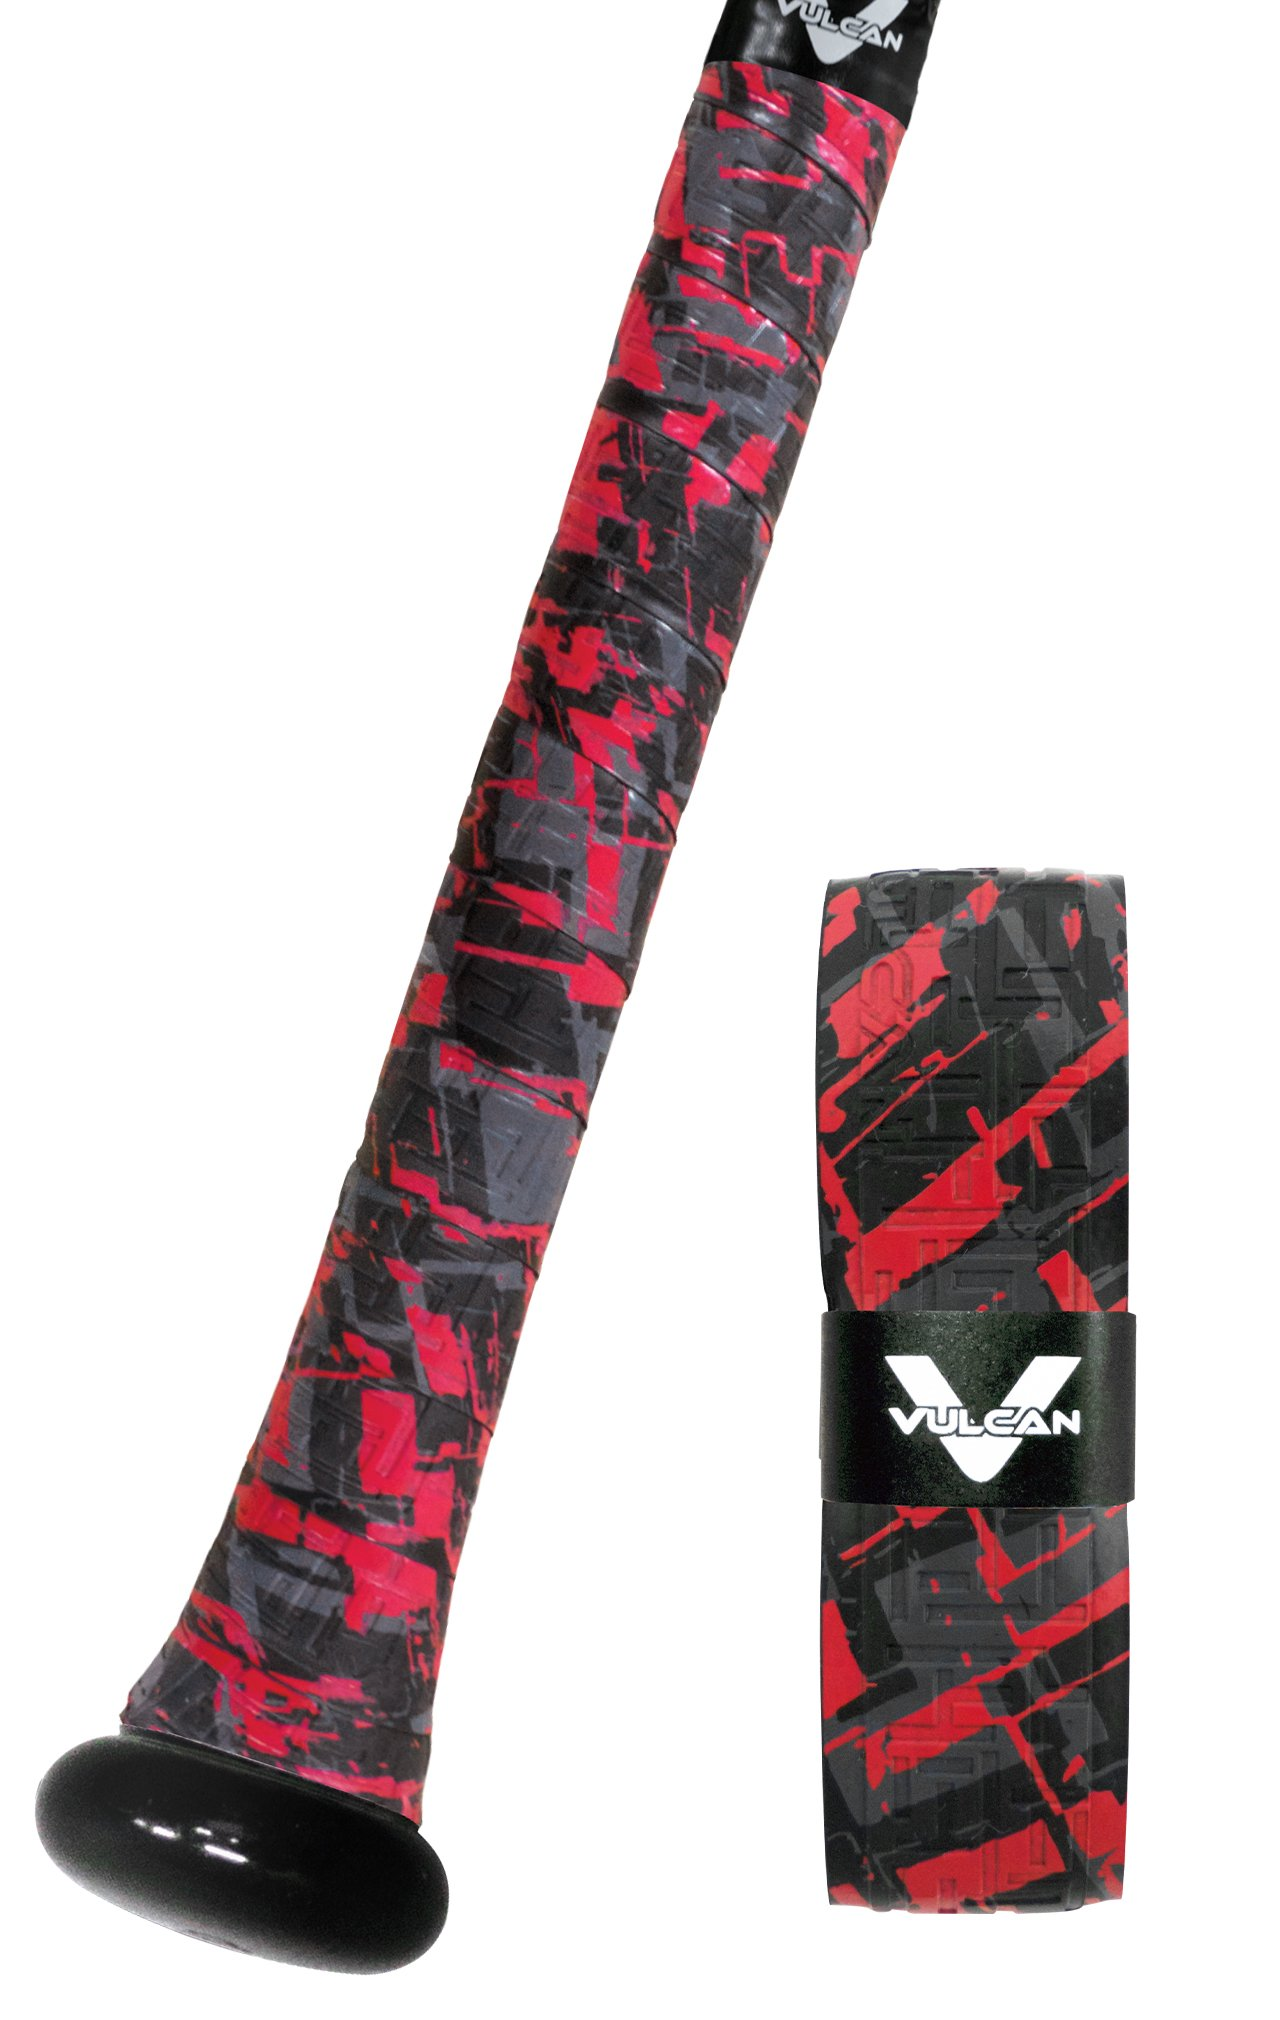 Vulcan Bat Grip by Vulcan